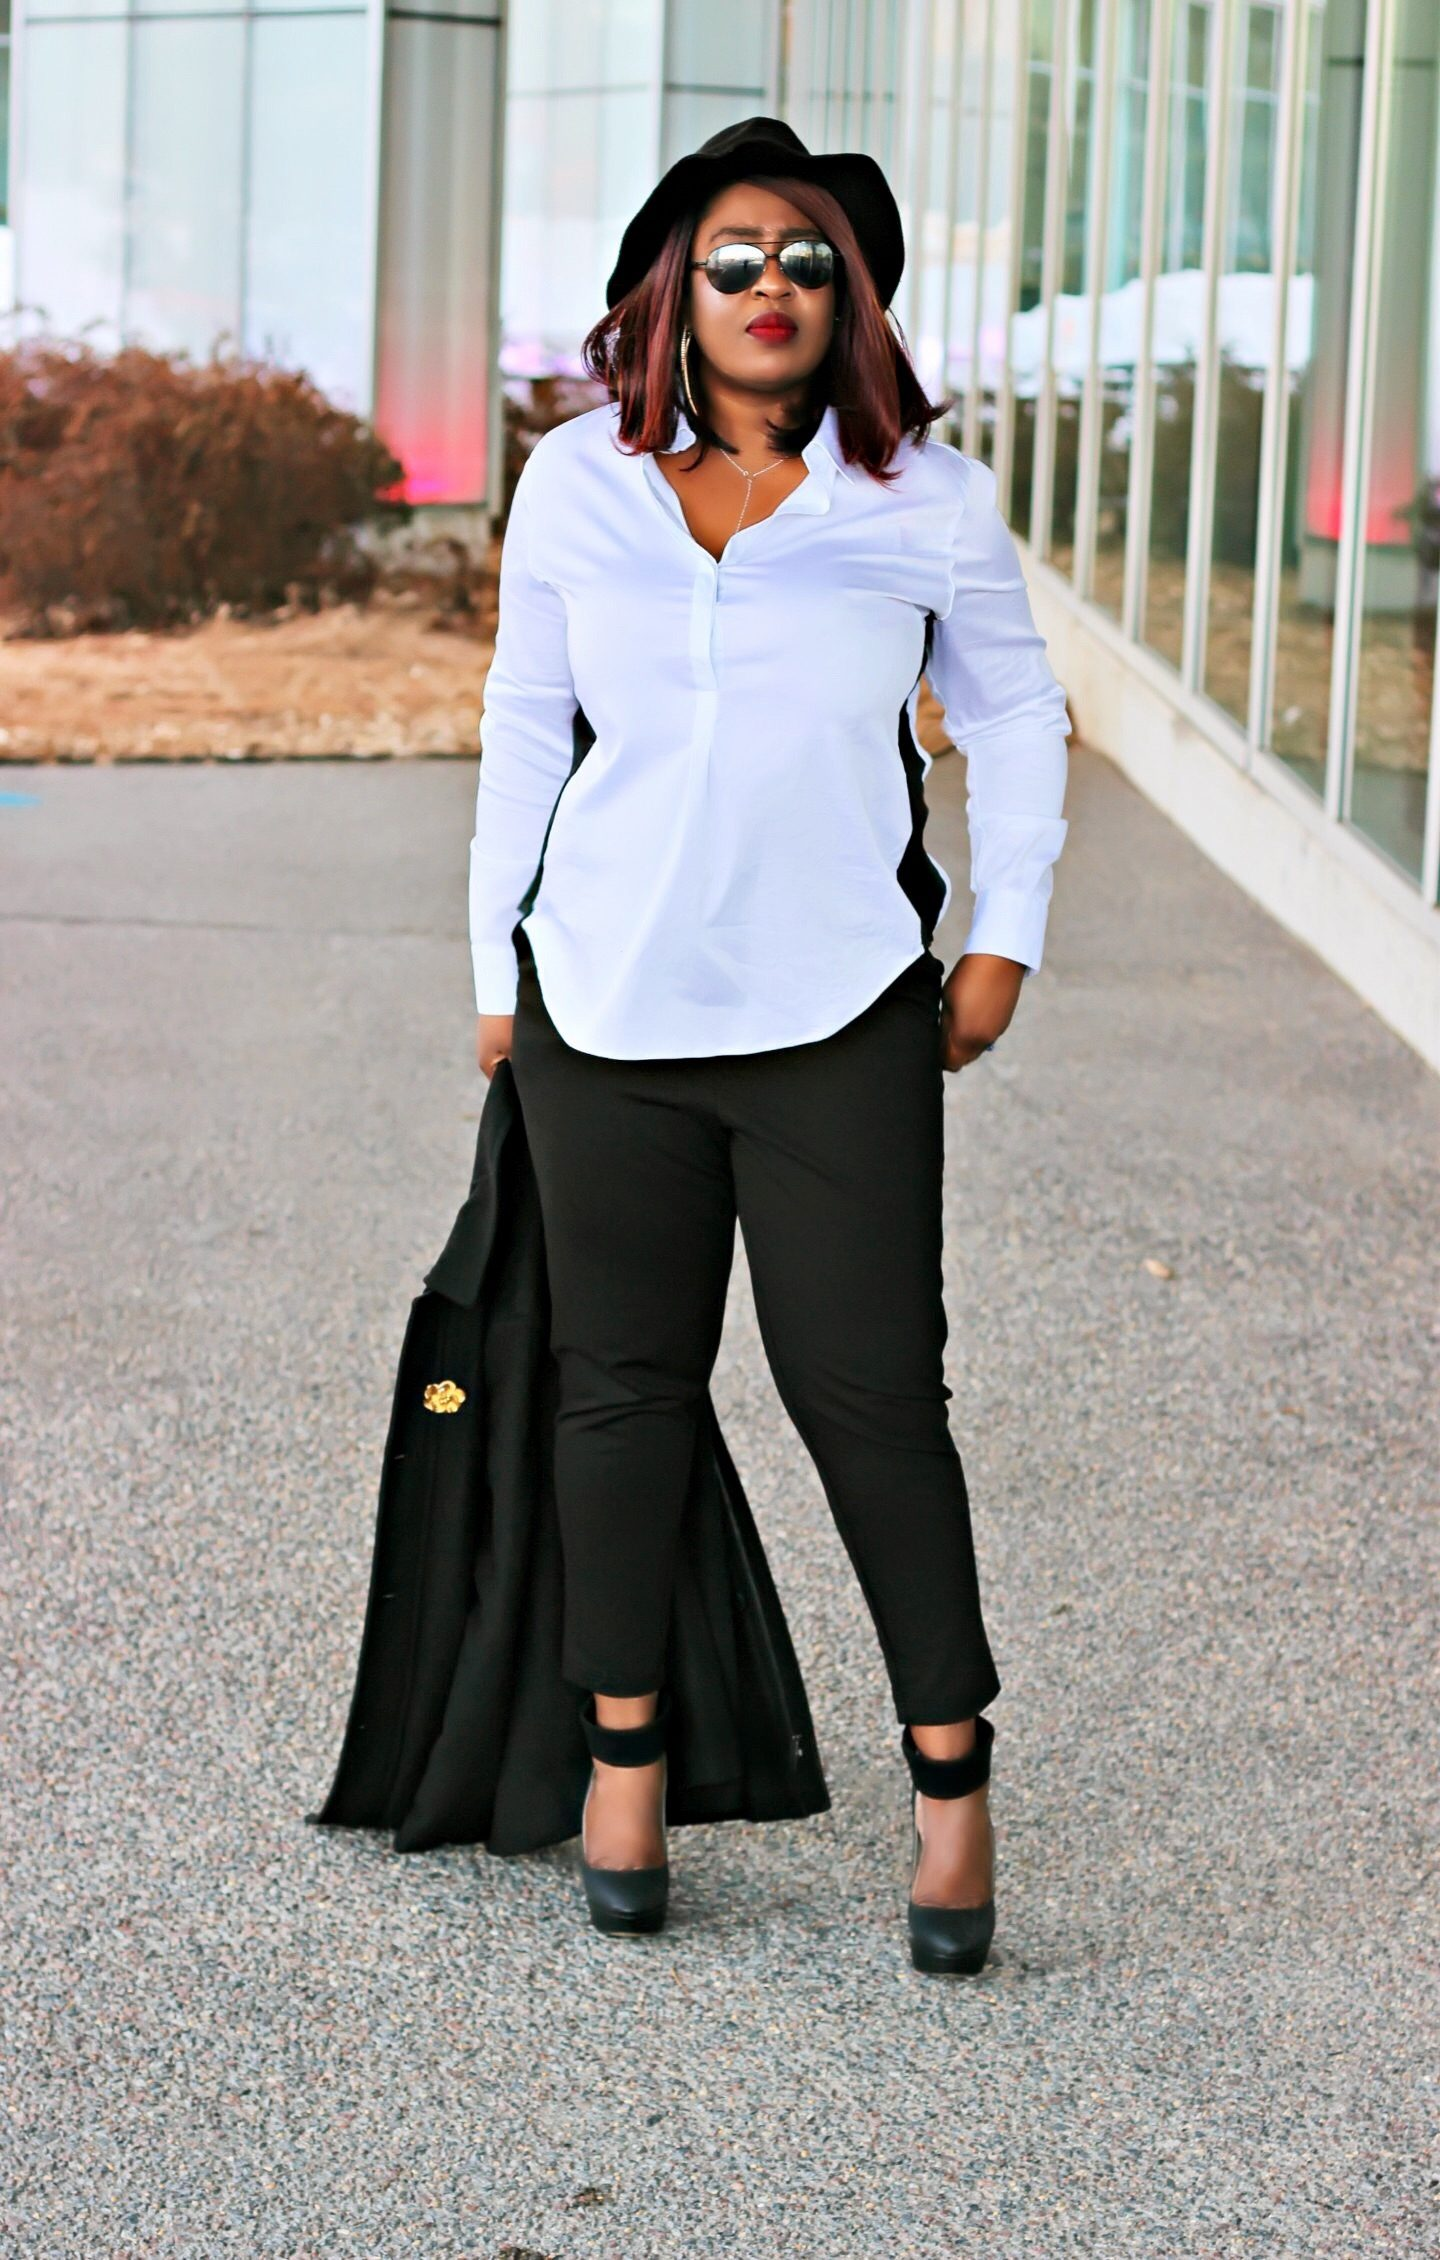 Black-blogger-in-white-and-black